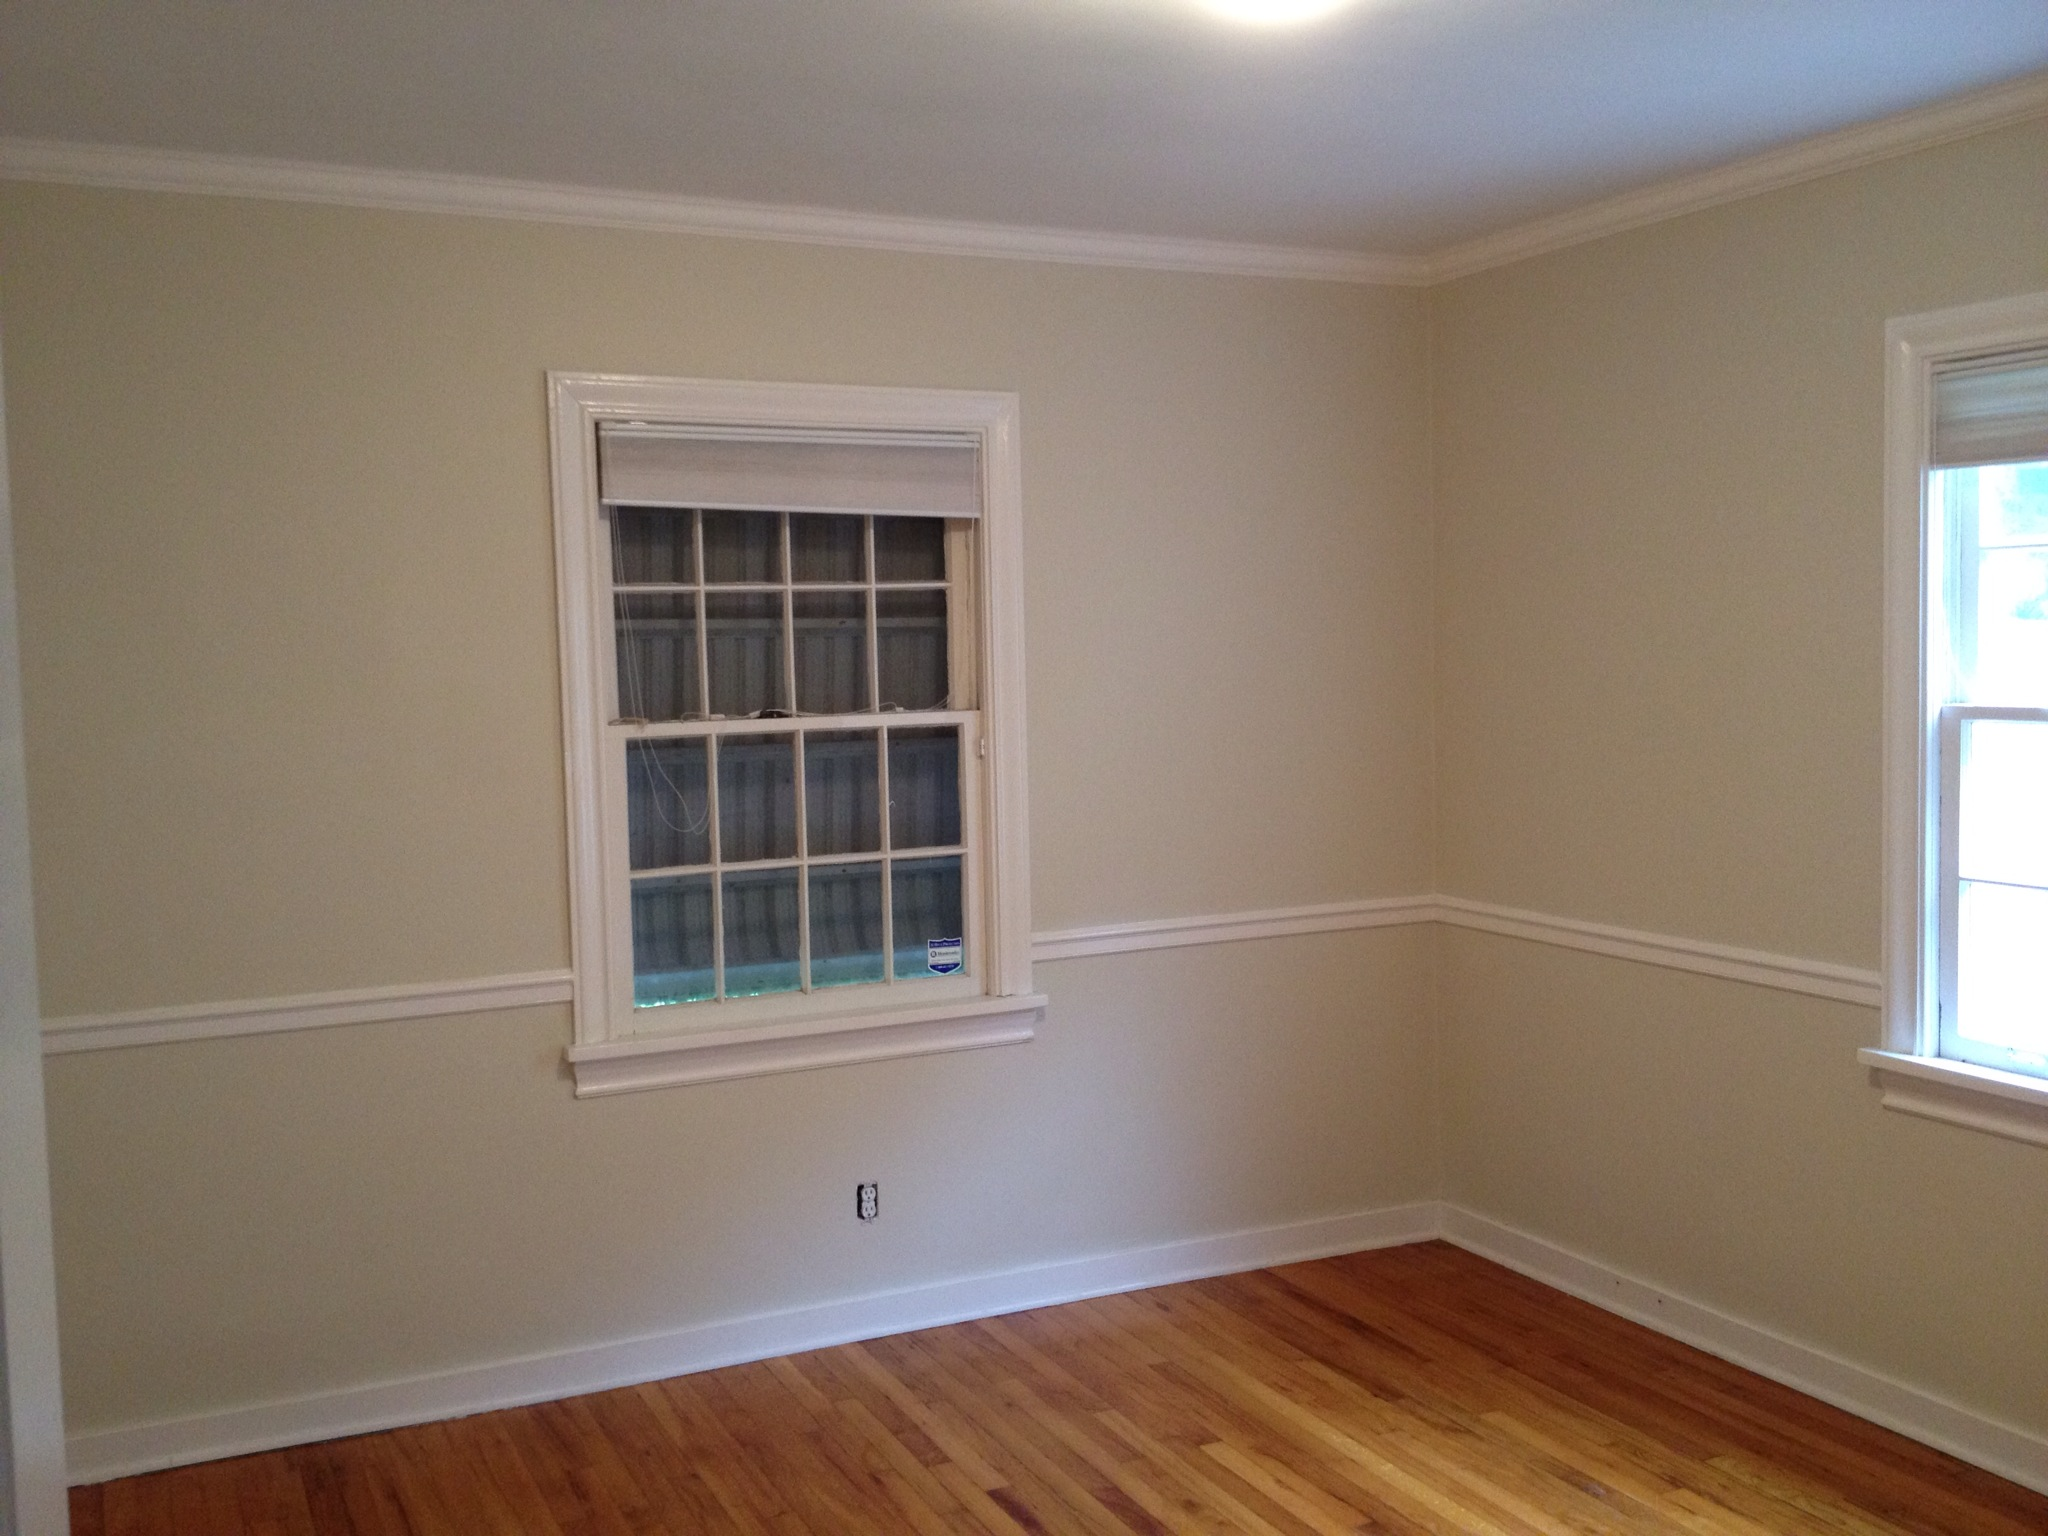 Kids bedroom: Before. Only original work was paint to the room.